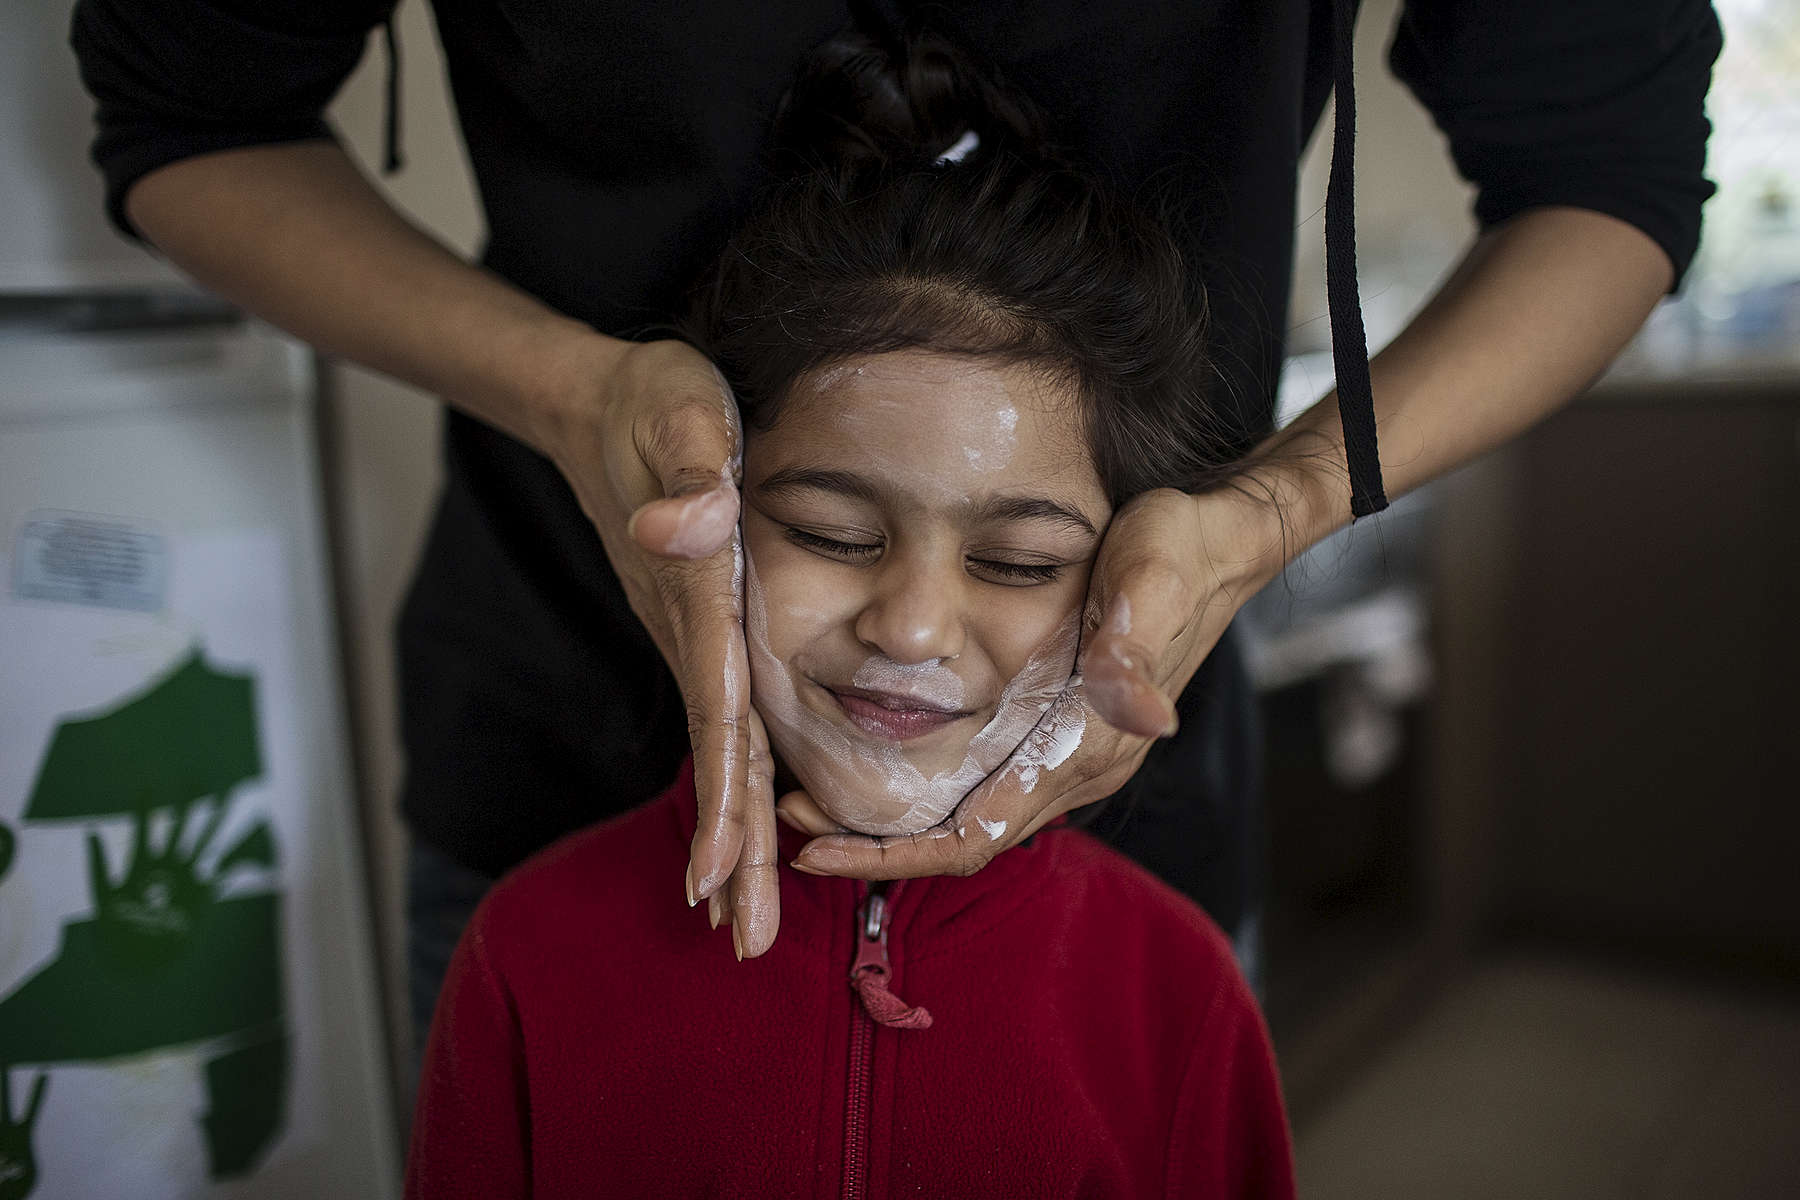 Ishma Alvi applies sunscreen to her daughters face before going out to a park. Sami Shah, his wife Ishma Alvi and daughter Anya migrated from Pakistan to Australia one year ago after receiving death threats for his work at a political journalist. The family now live in Northam a small country town of 7000 people approximately 100 kilometres from Perth the capital of Western Australia. 08/17/2013  Credit : Conor Ashleigh for the International Herald Tribune.